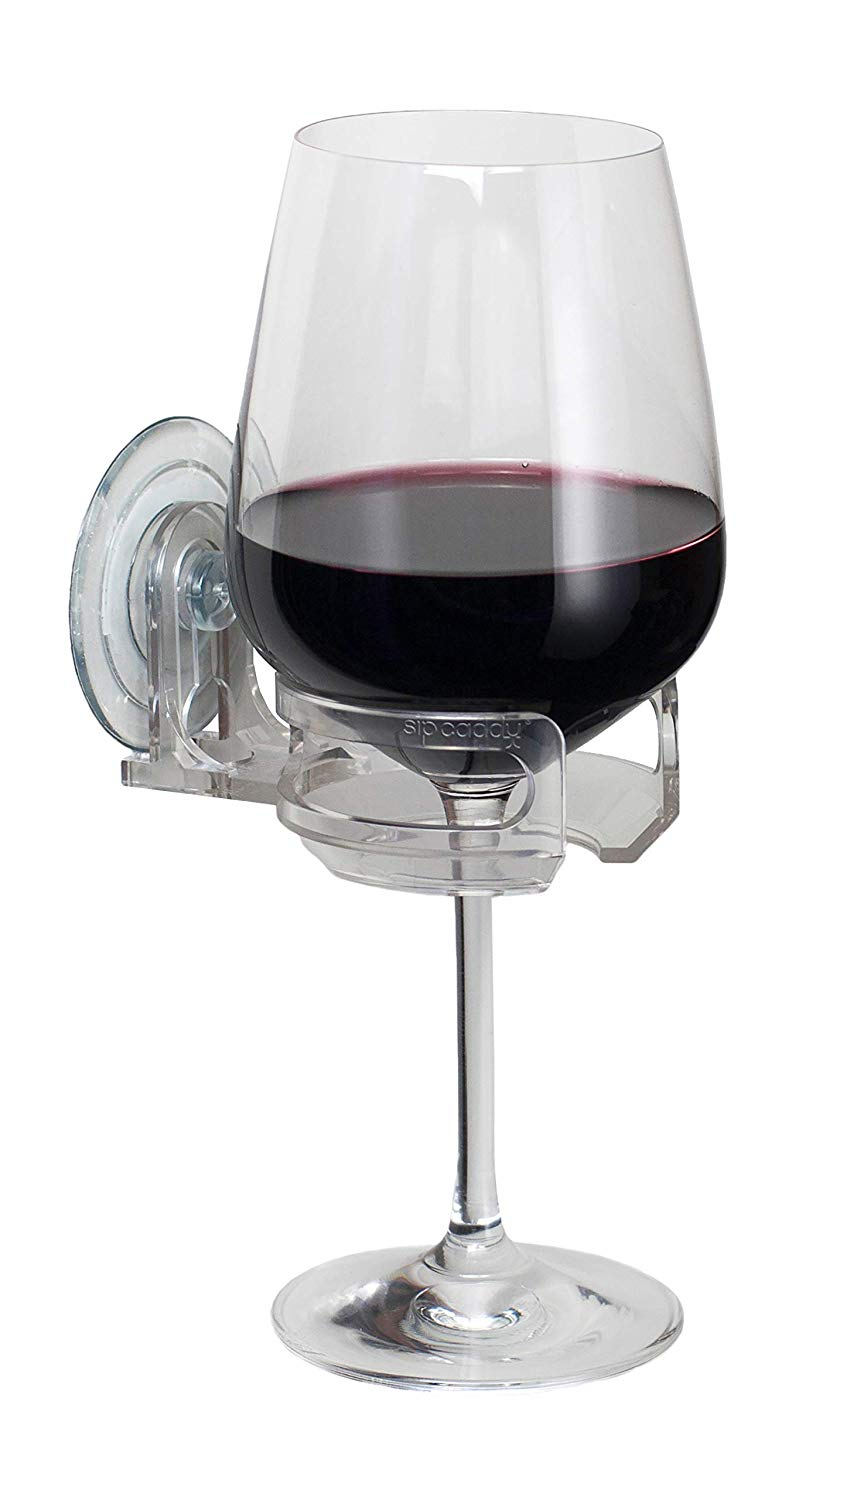 gifts for mom who likes a cozy night in, sipcaddy for wine